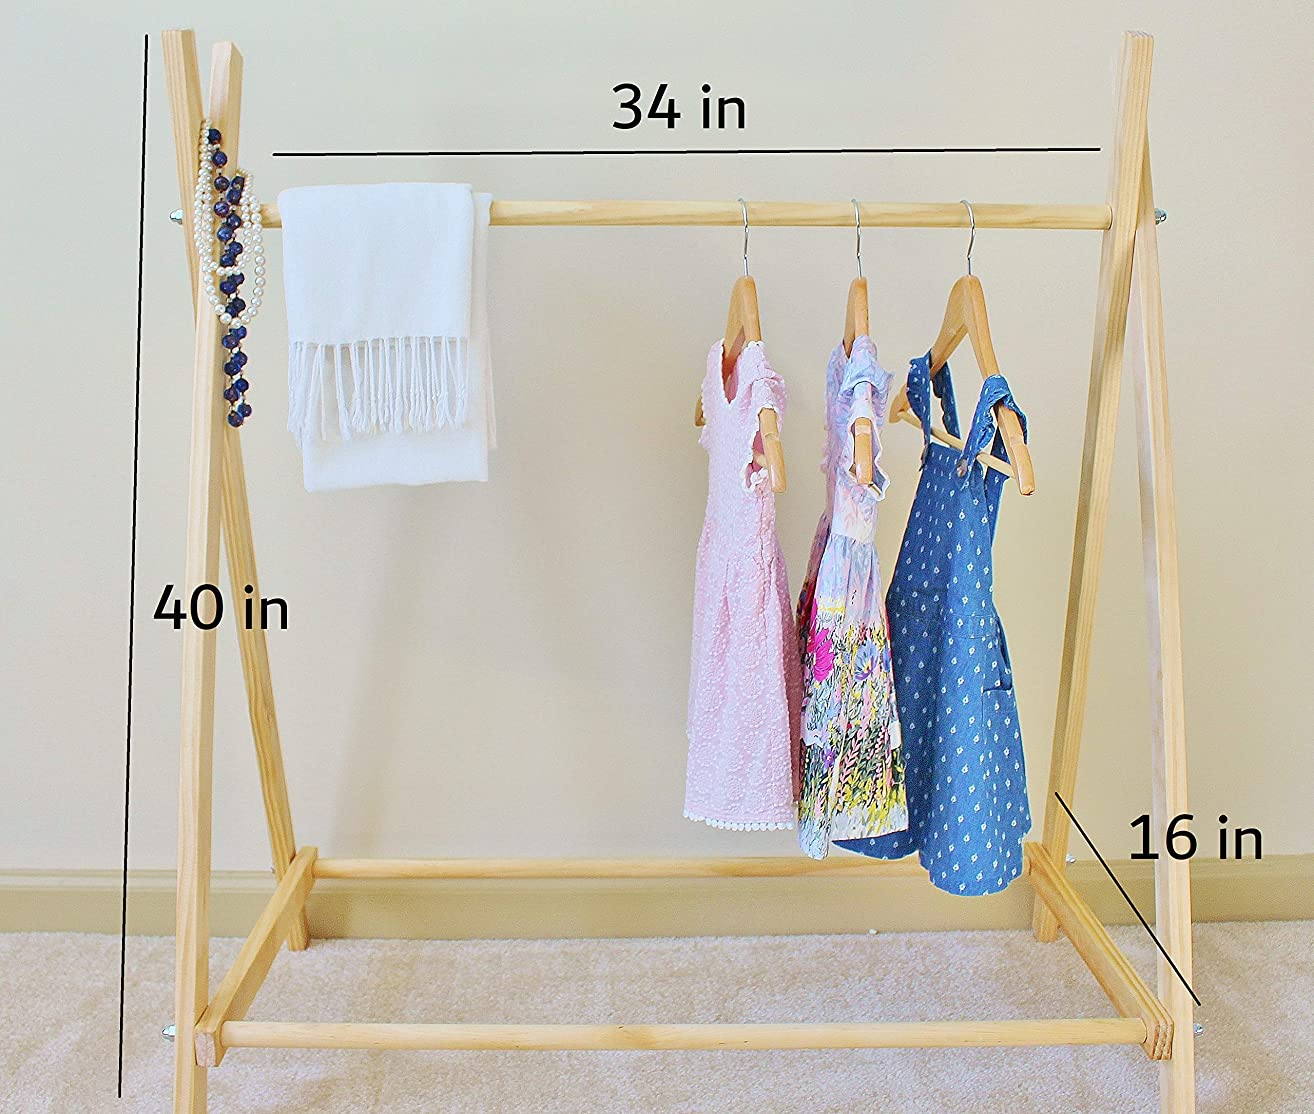 Clothing Rack, Nursery Decor, Dress Up Station, Kids Clothing Storage, FOLDS UP For Easy Storage, 40x38 in Tall Wooden Clothes A Frame Rack